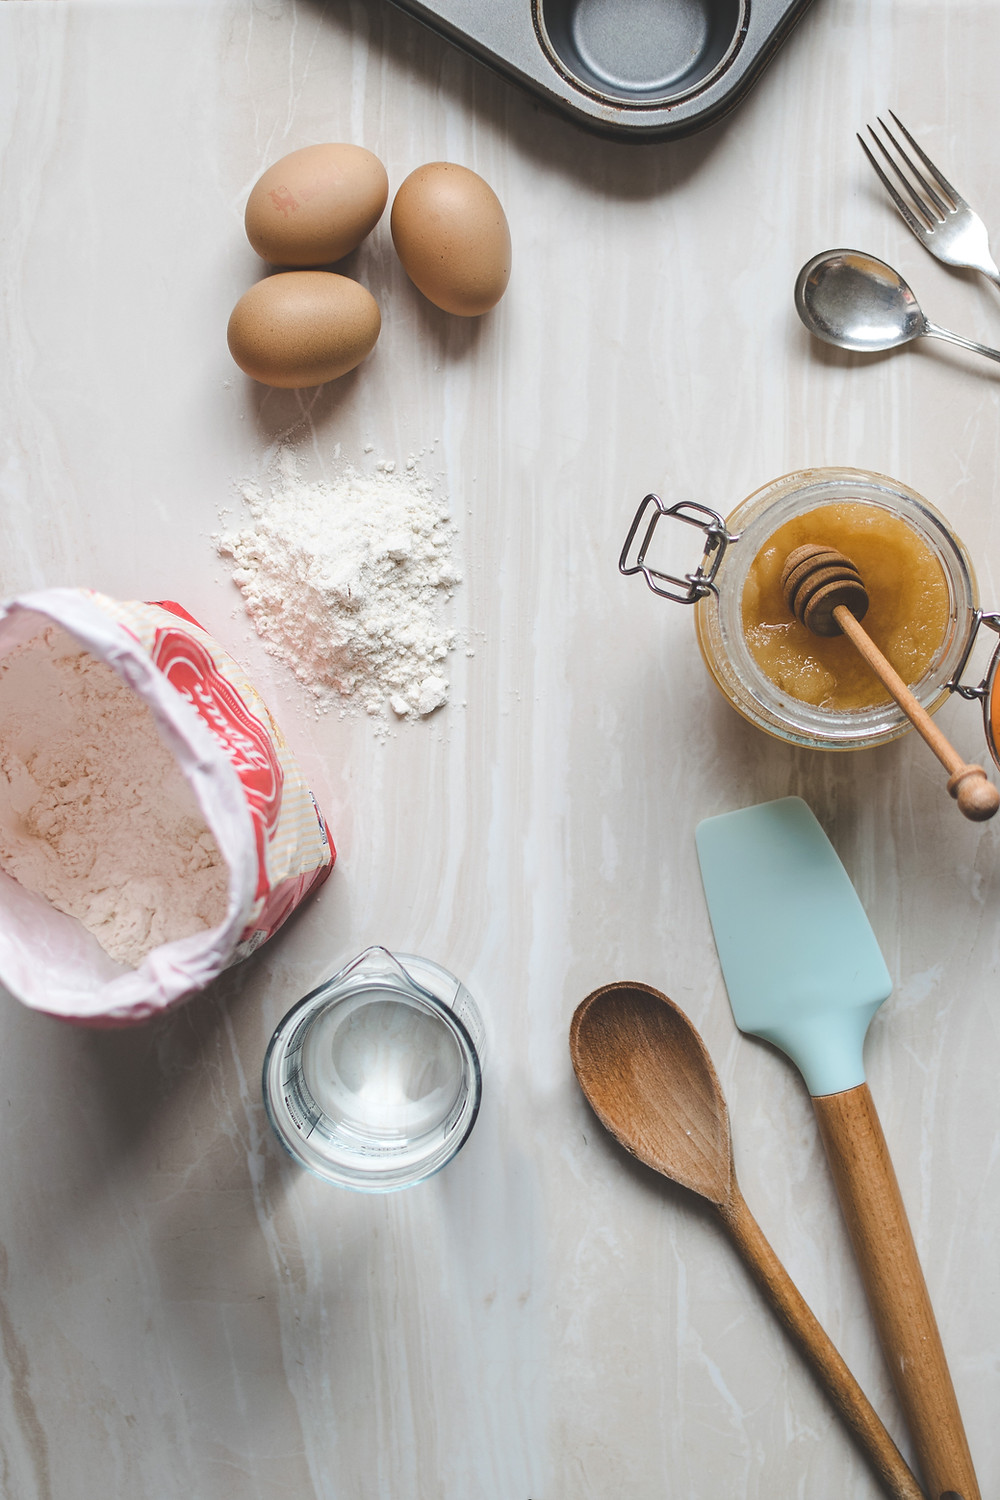 baking, baking hacks, ingredients, recipes